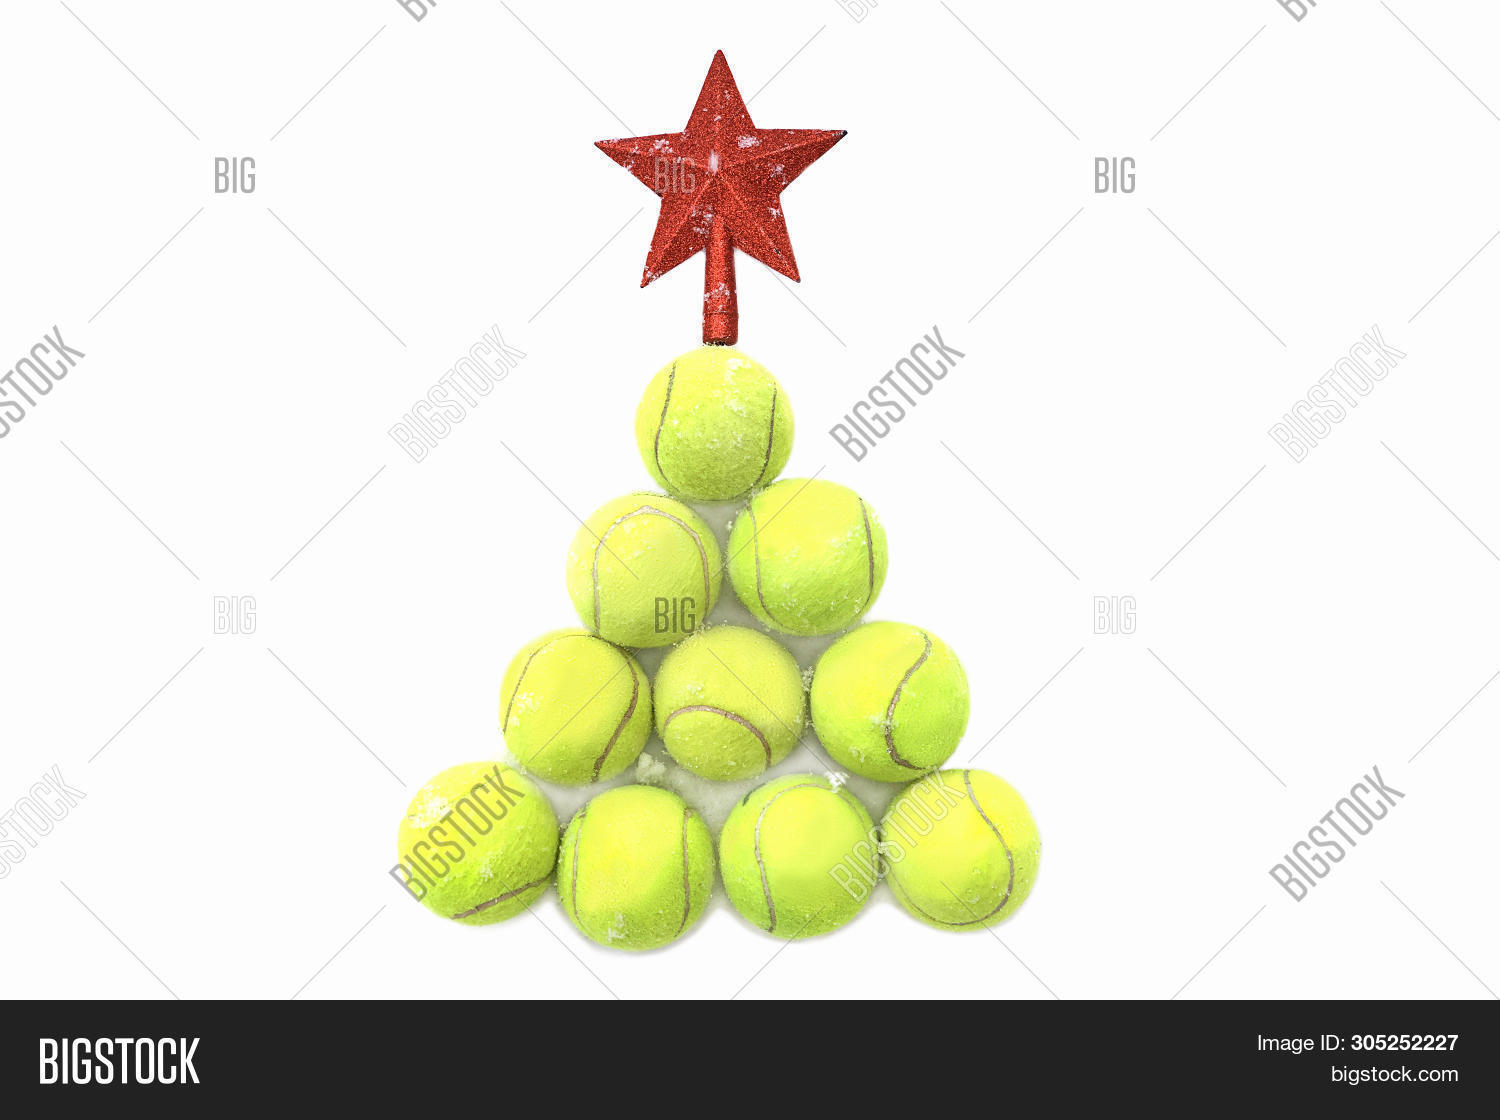 Christmas Sports Background.Red Star On Tennis Image Photo Free Trial Bigstock